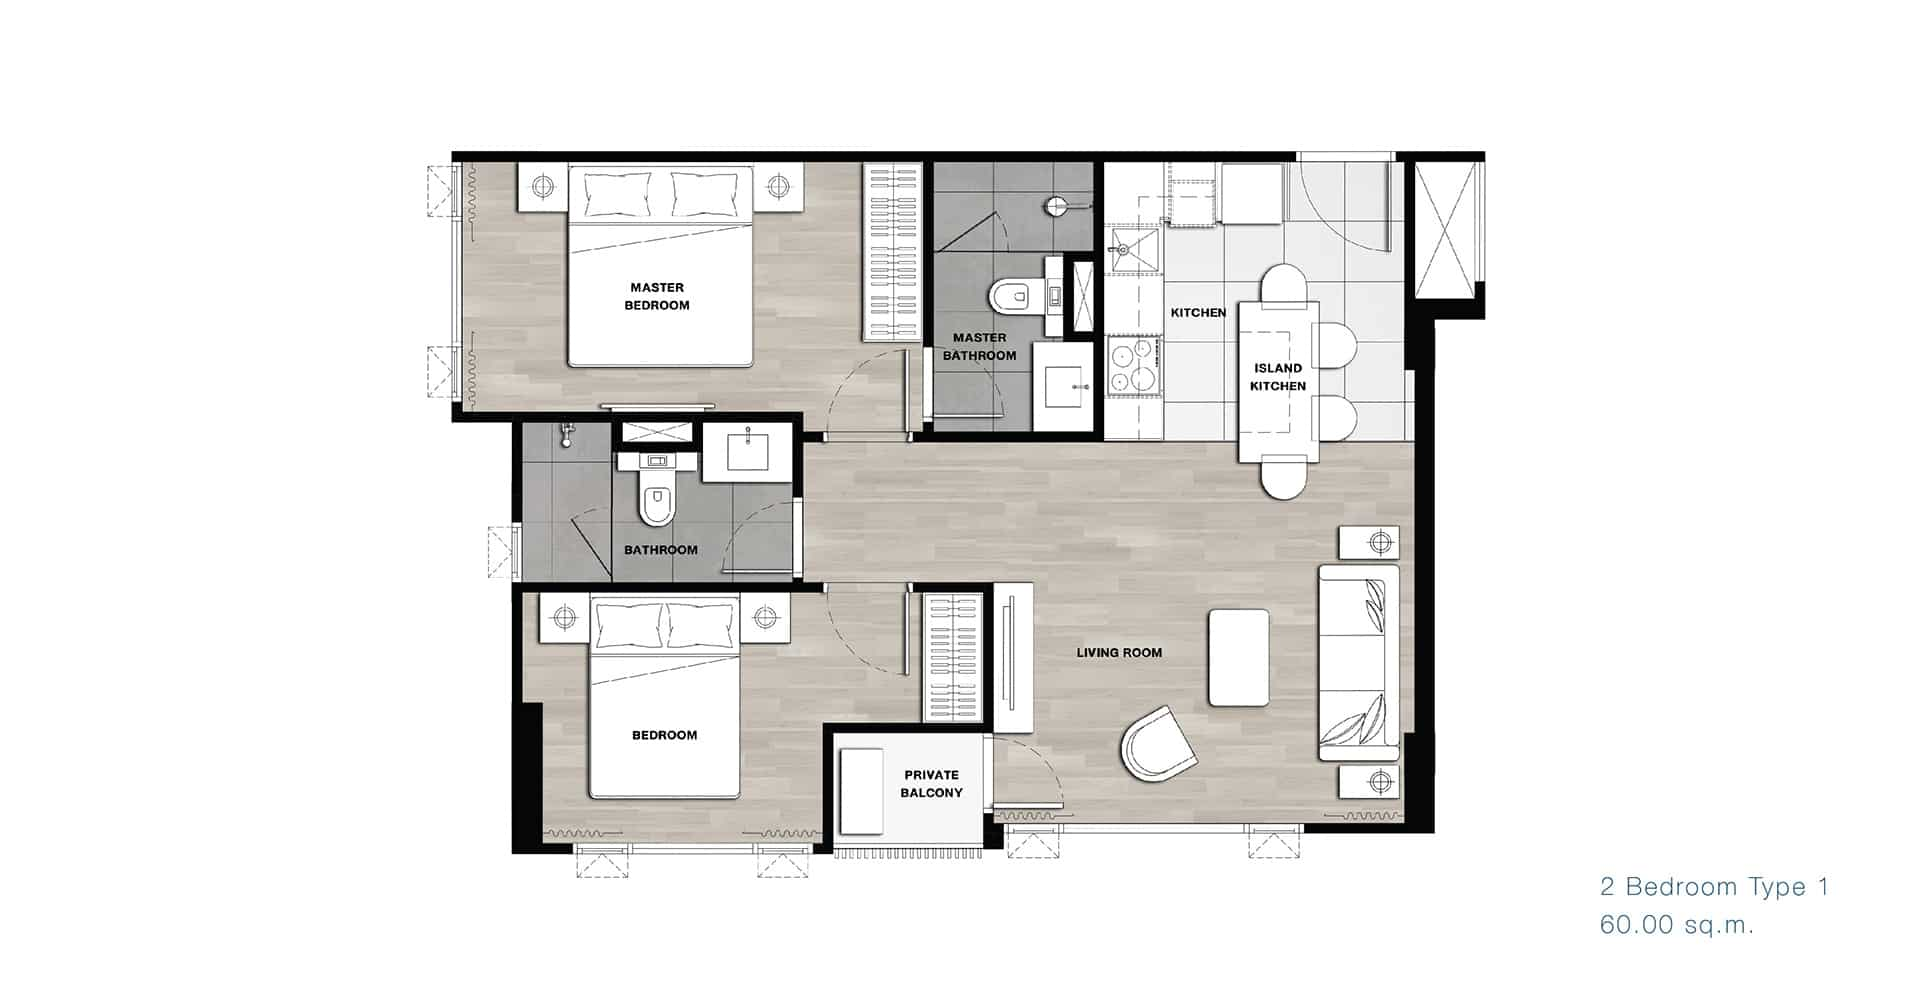 2 bedroom - (Kara ari - rama 6)